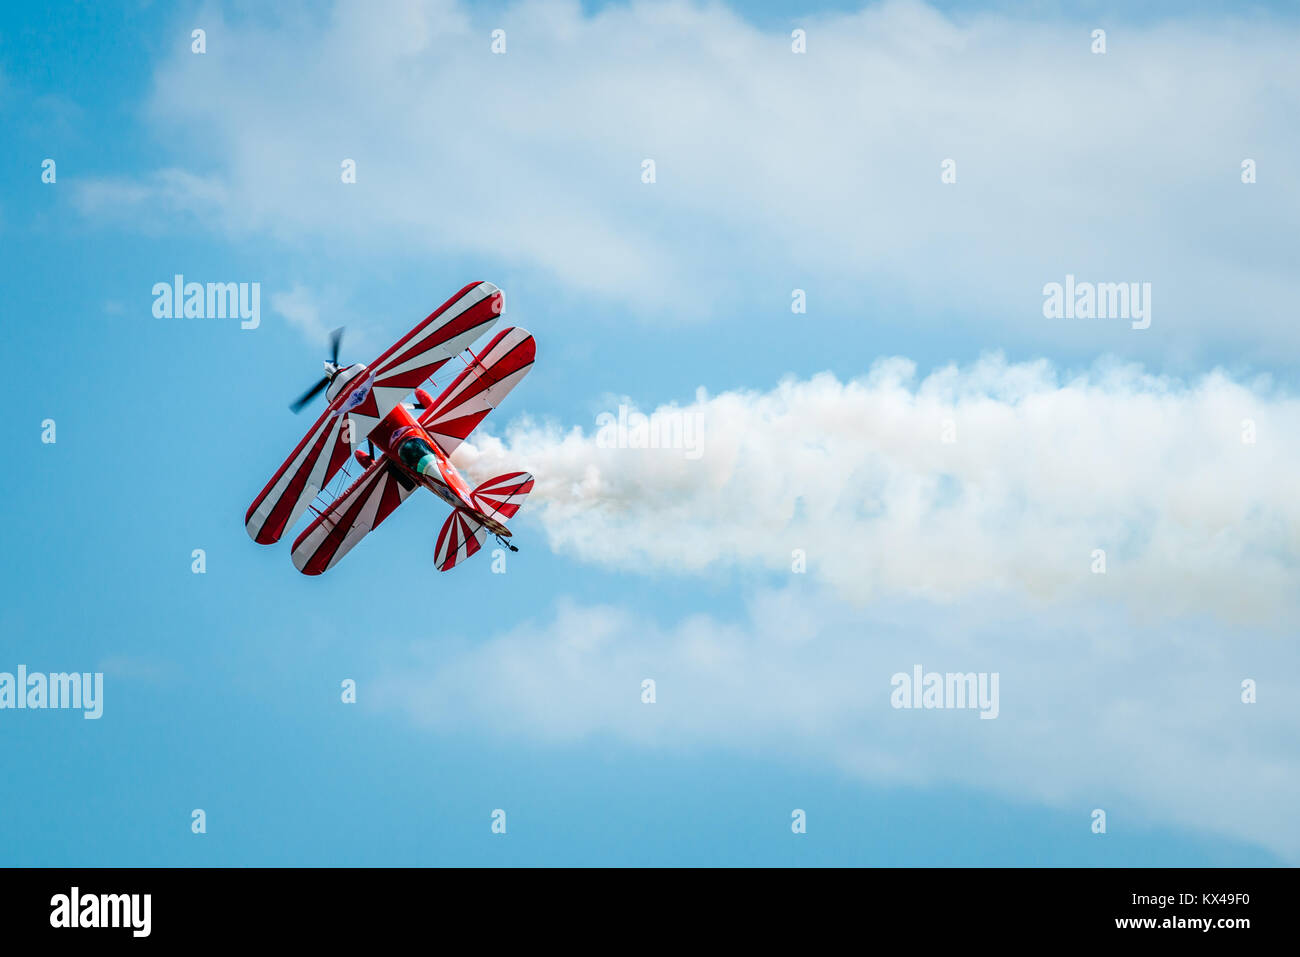 Richard Goodwin biplane during the Clacton Air Show - Stock Image